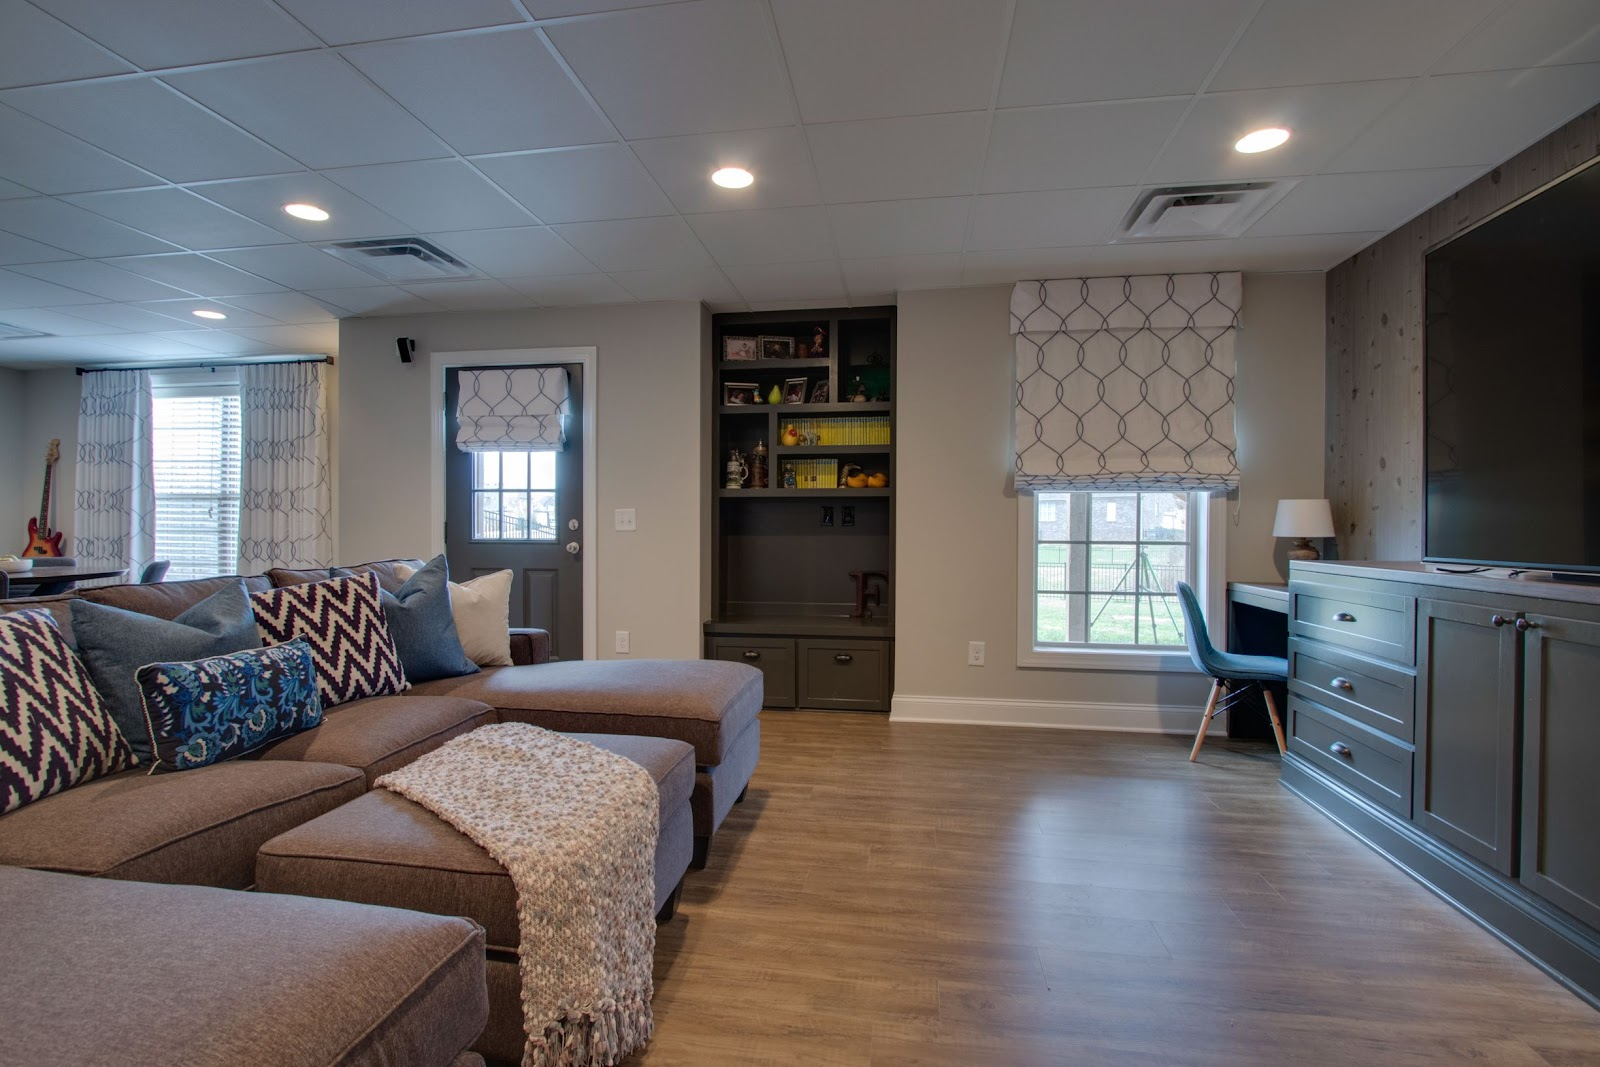 superior construction and design create a multi-functional space living room with office space